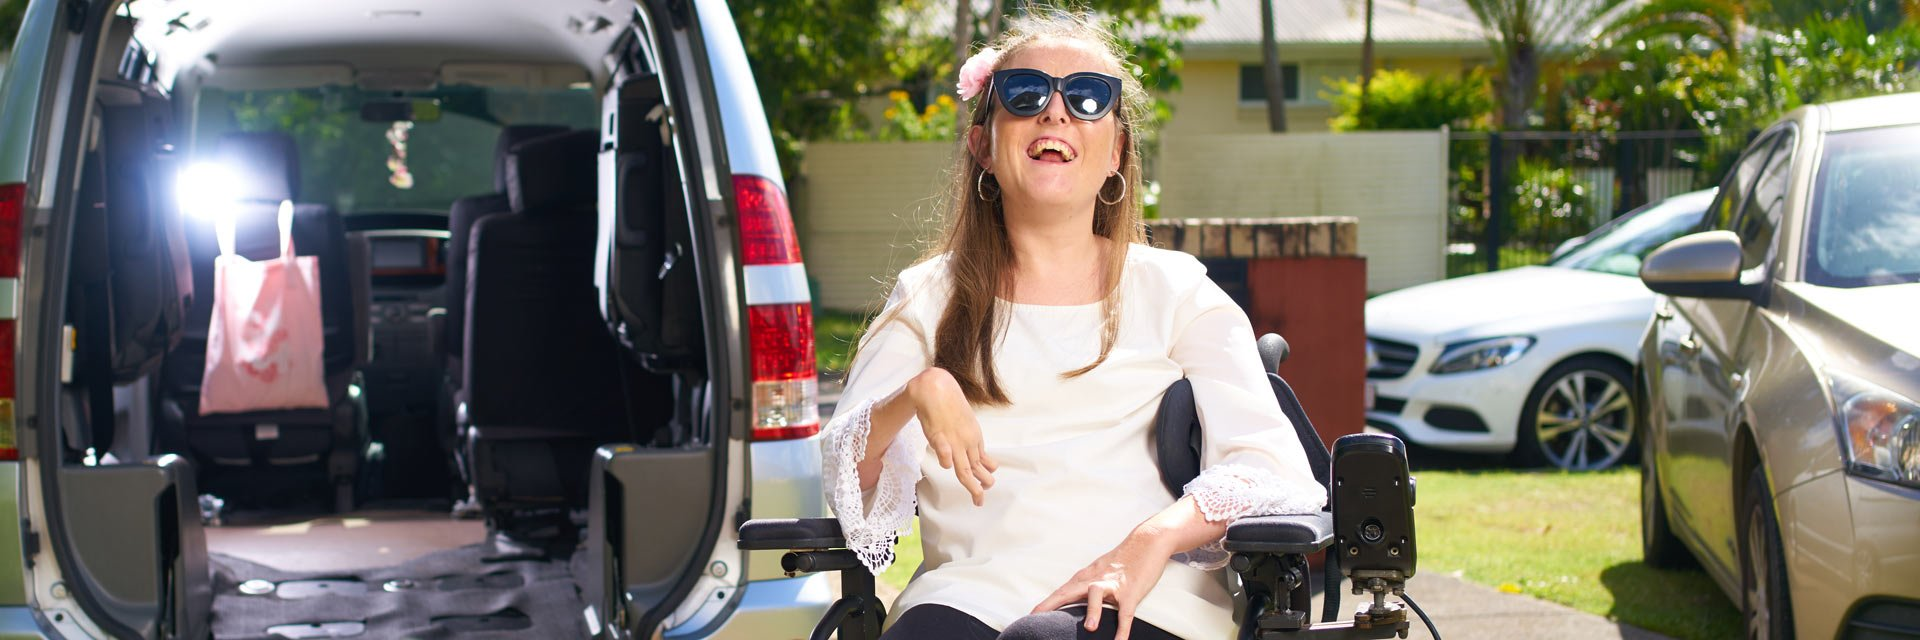 Customer outside the front of an accessible vehicle